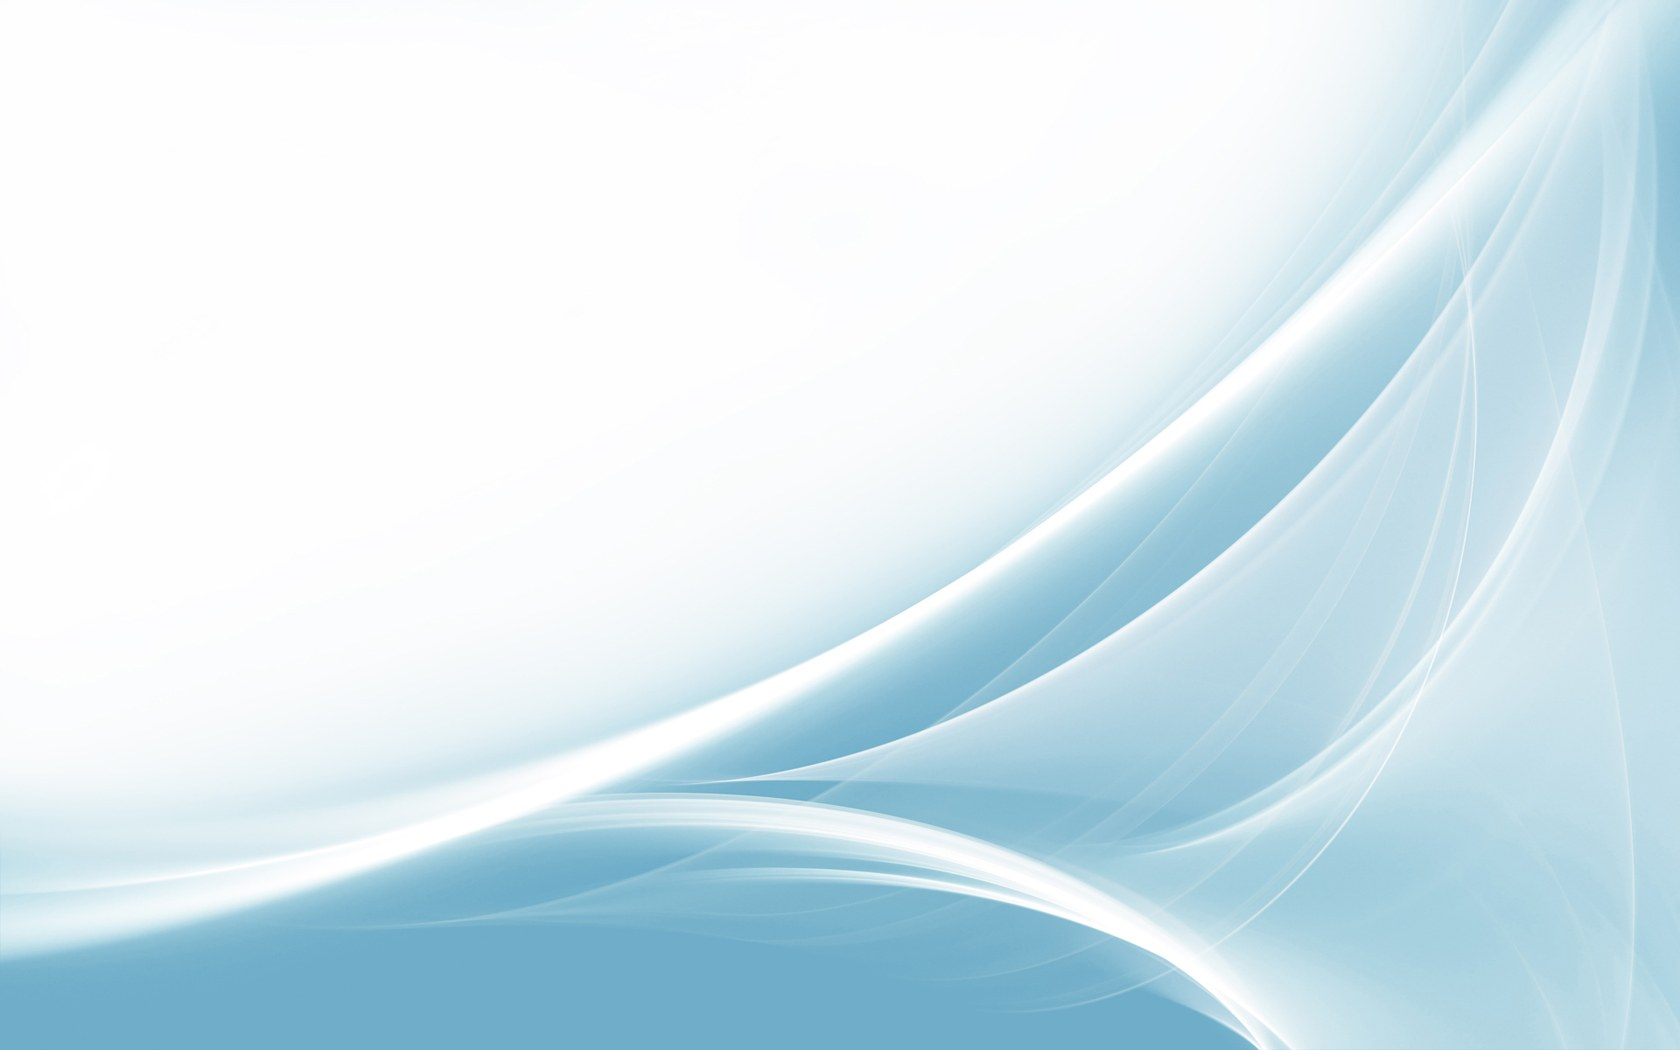 Clear White and Blue Background HD 4237533 1680x1050 1680x1050